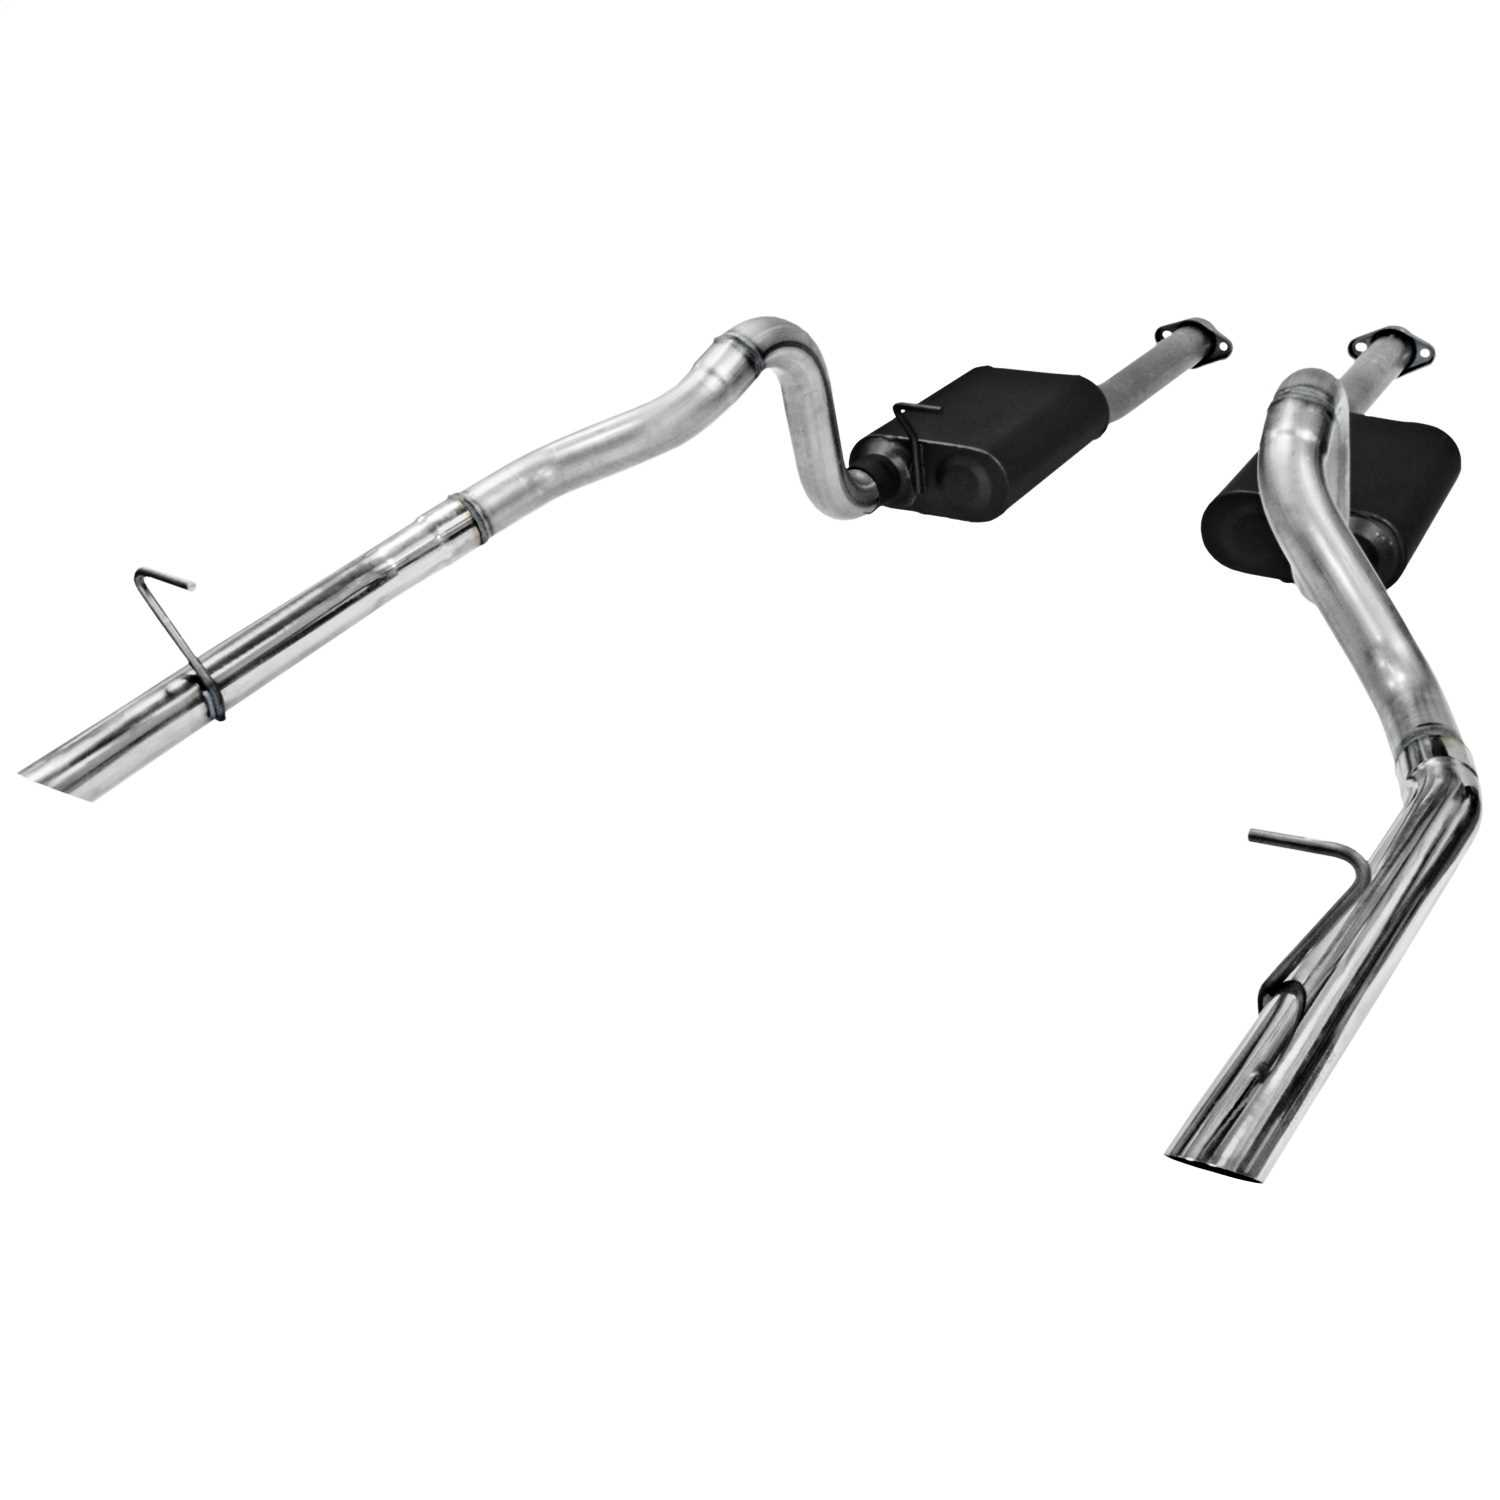 817213 Flowmaster American Thunder Cat Back Exhaust System